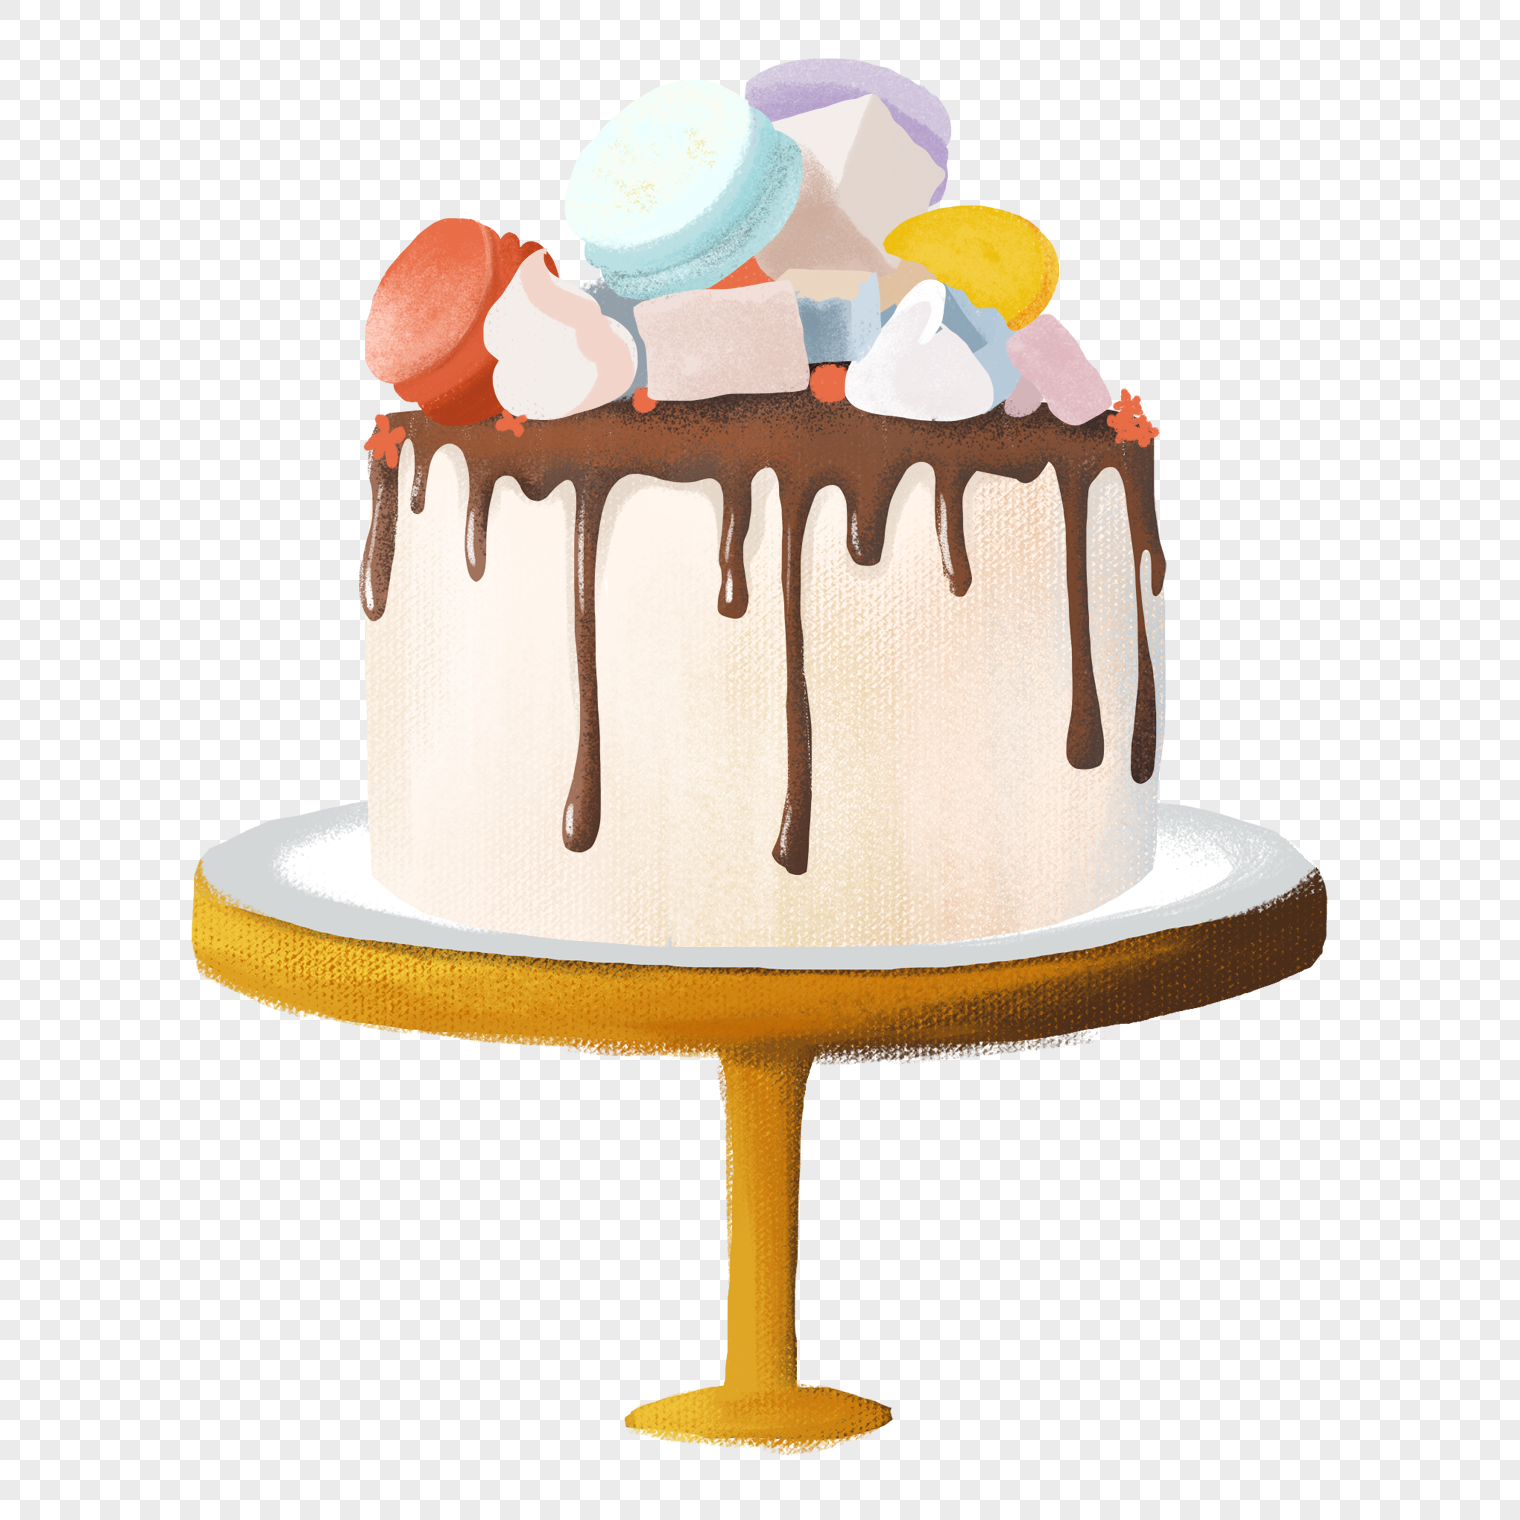 Hand Painted Wedding Cake Png Image Picture Free Download